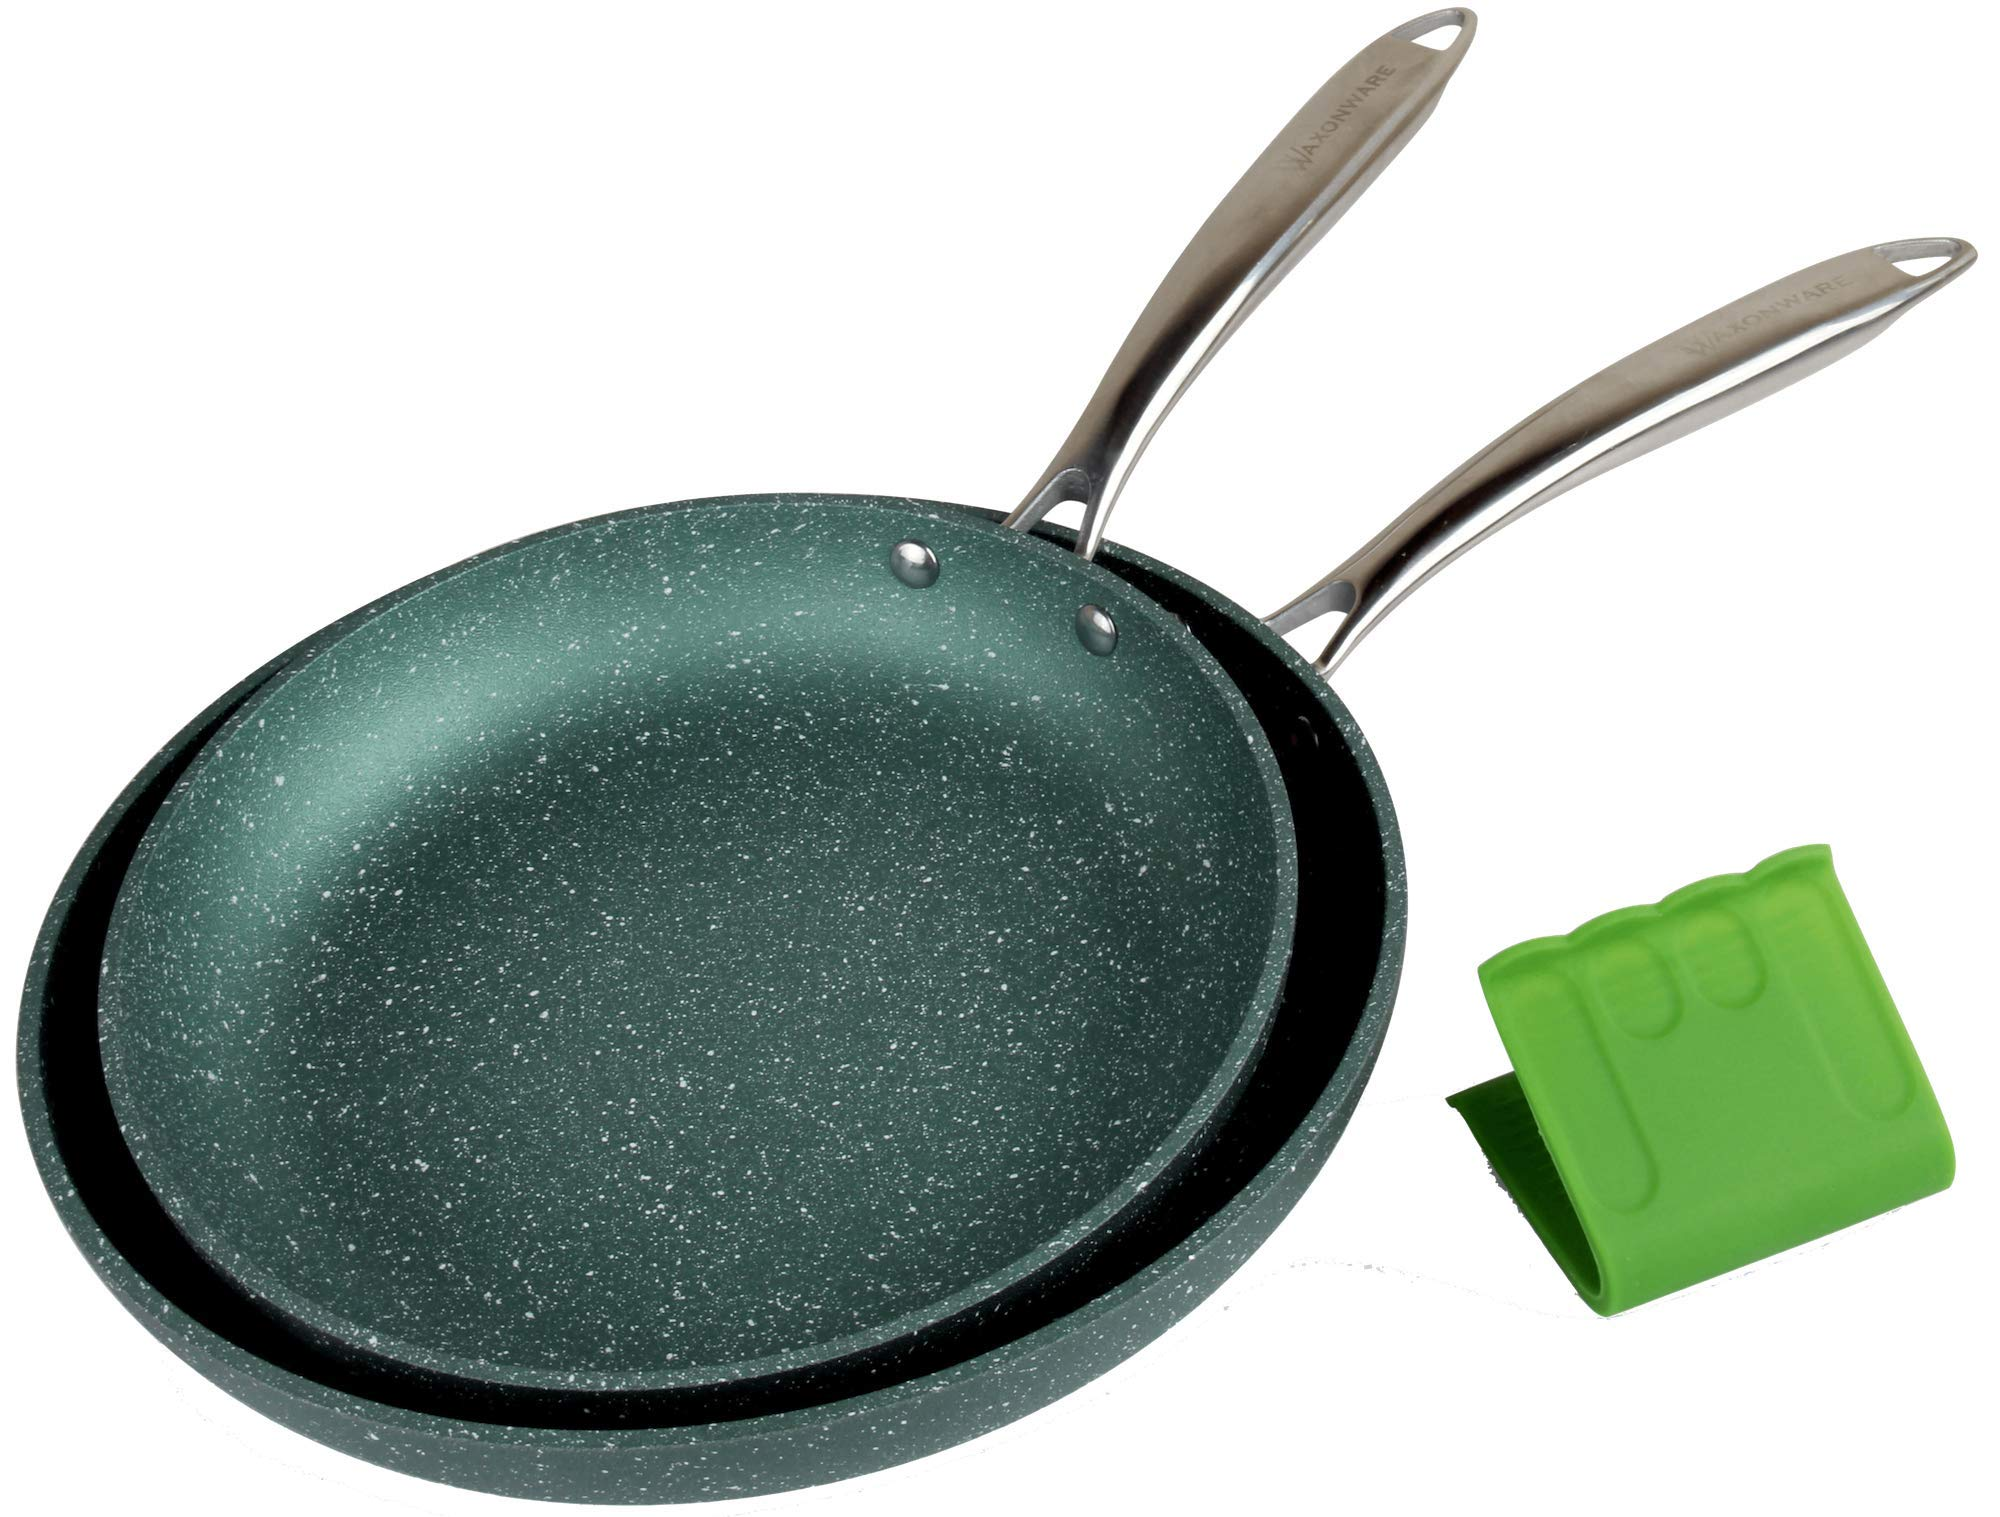 WaxonWare Emerald Nonstick Frying Pan Set 9.5 & 11 Inch Omelette Fry Pan - (PTFE, PFOA and APEO Free) Induction & Oven Safe Non stick Skillet